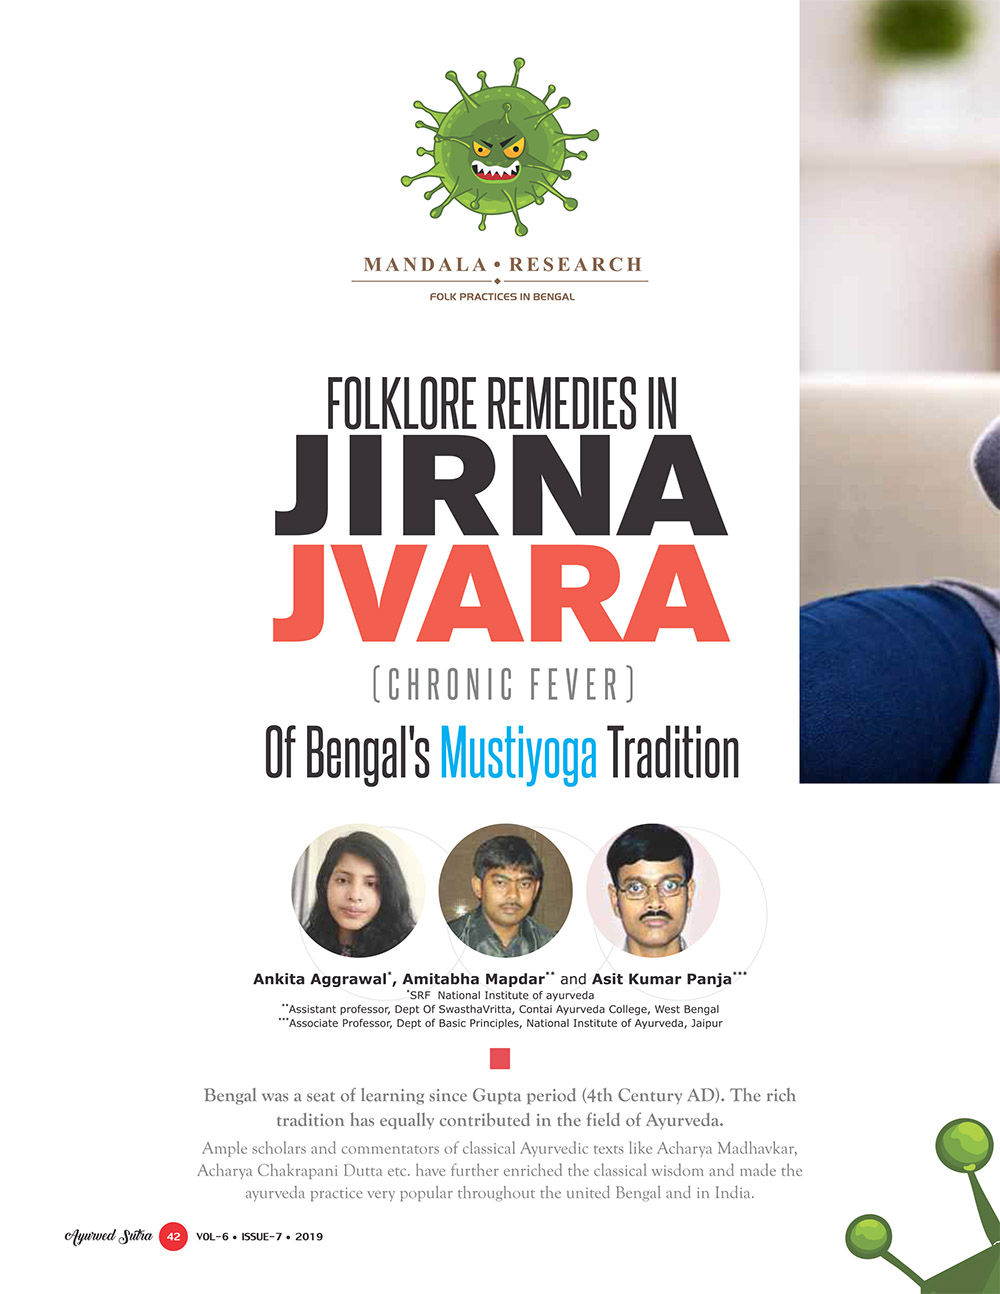 Ayurvedsutra Vol 06 issue 07 44 - Folklore remedies in Jirna Jvara (Chronic Fever) of Bengal's Mustiyoga Tradition